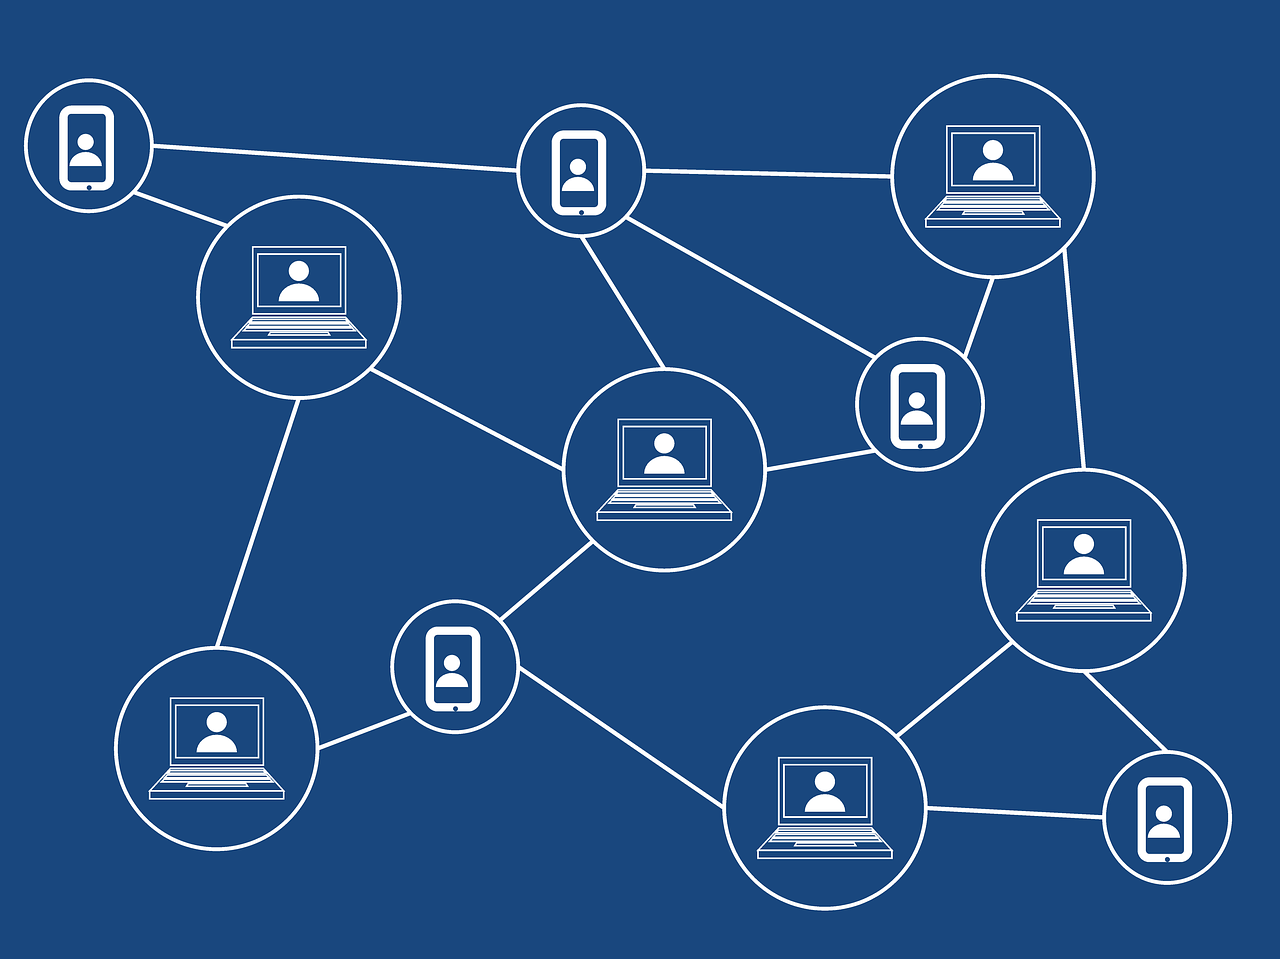 Use Blockchain to complete education background check within a few hours